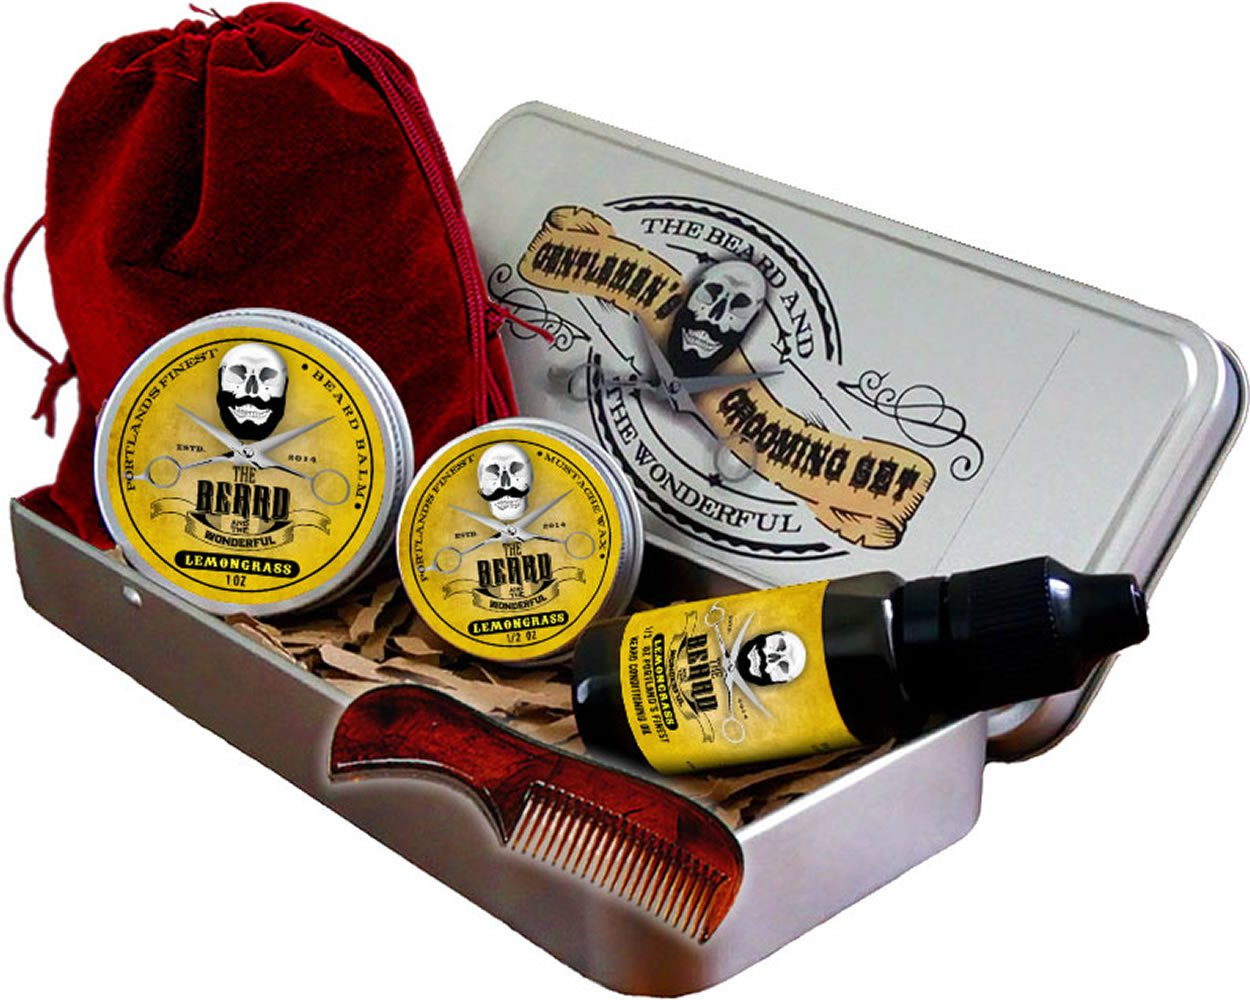 Beard Grooming Kit - Lemongrass Fragrance, Traditional Beard Oil, Moustache Wax, Beard Taming Balm, Mini Comb packed in a nifty aluminium gift case. The perfect Present all Natural Ingredients The Beard and The Wonderful tbatw-gk003-lem